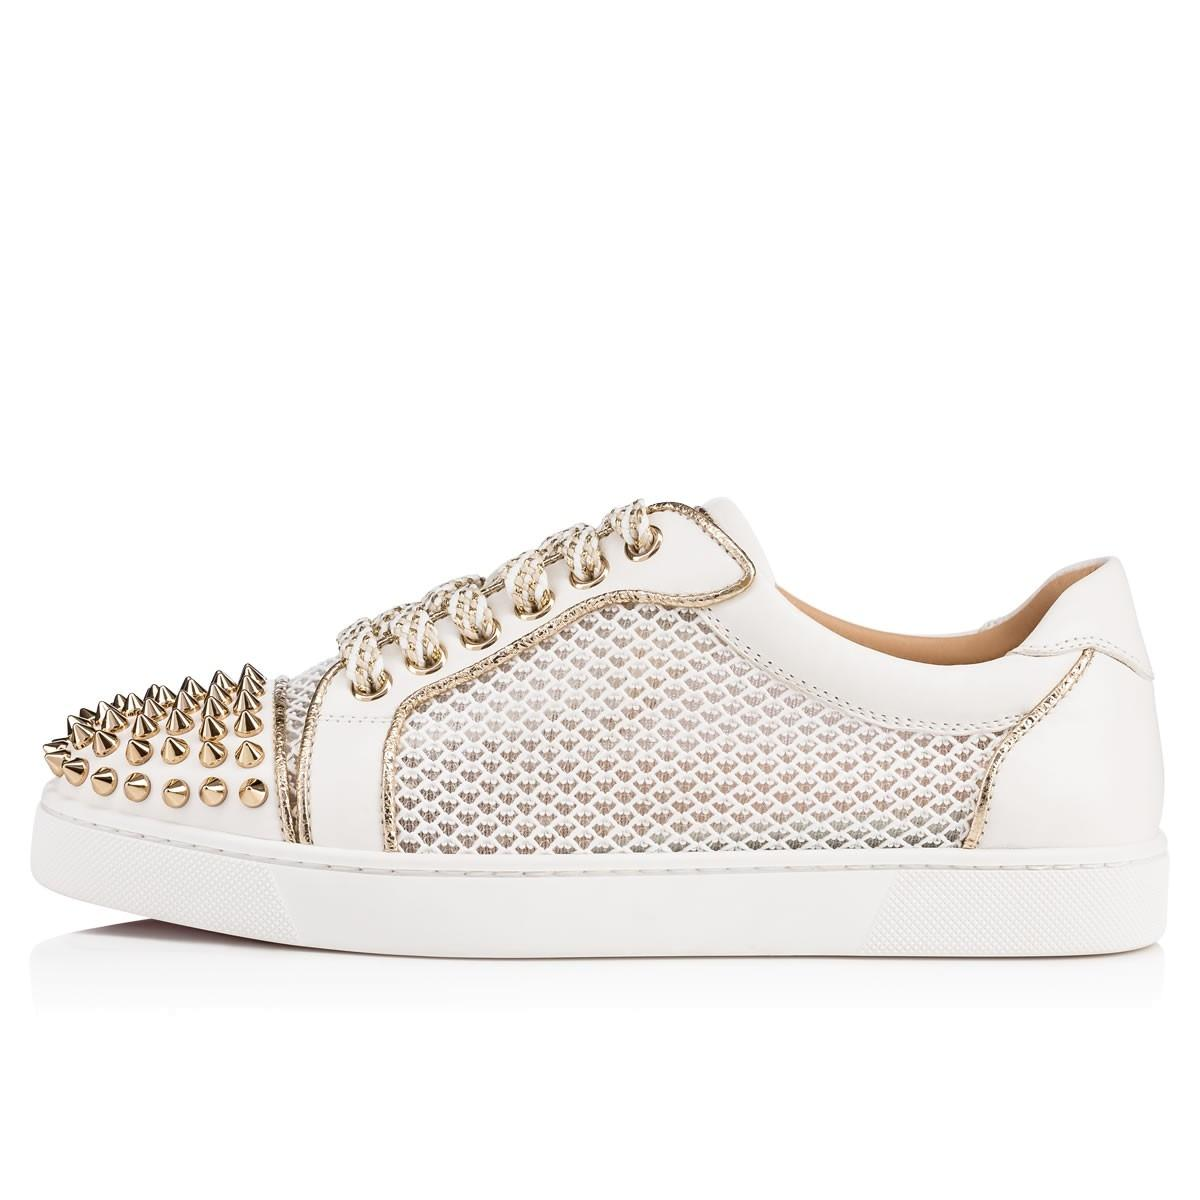 b085d5012363 ... discount code for christian louboutin low top white gold ac vieira spikes  studded mesh fabric leather